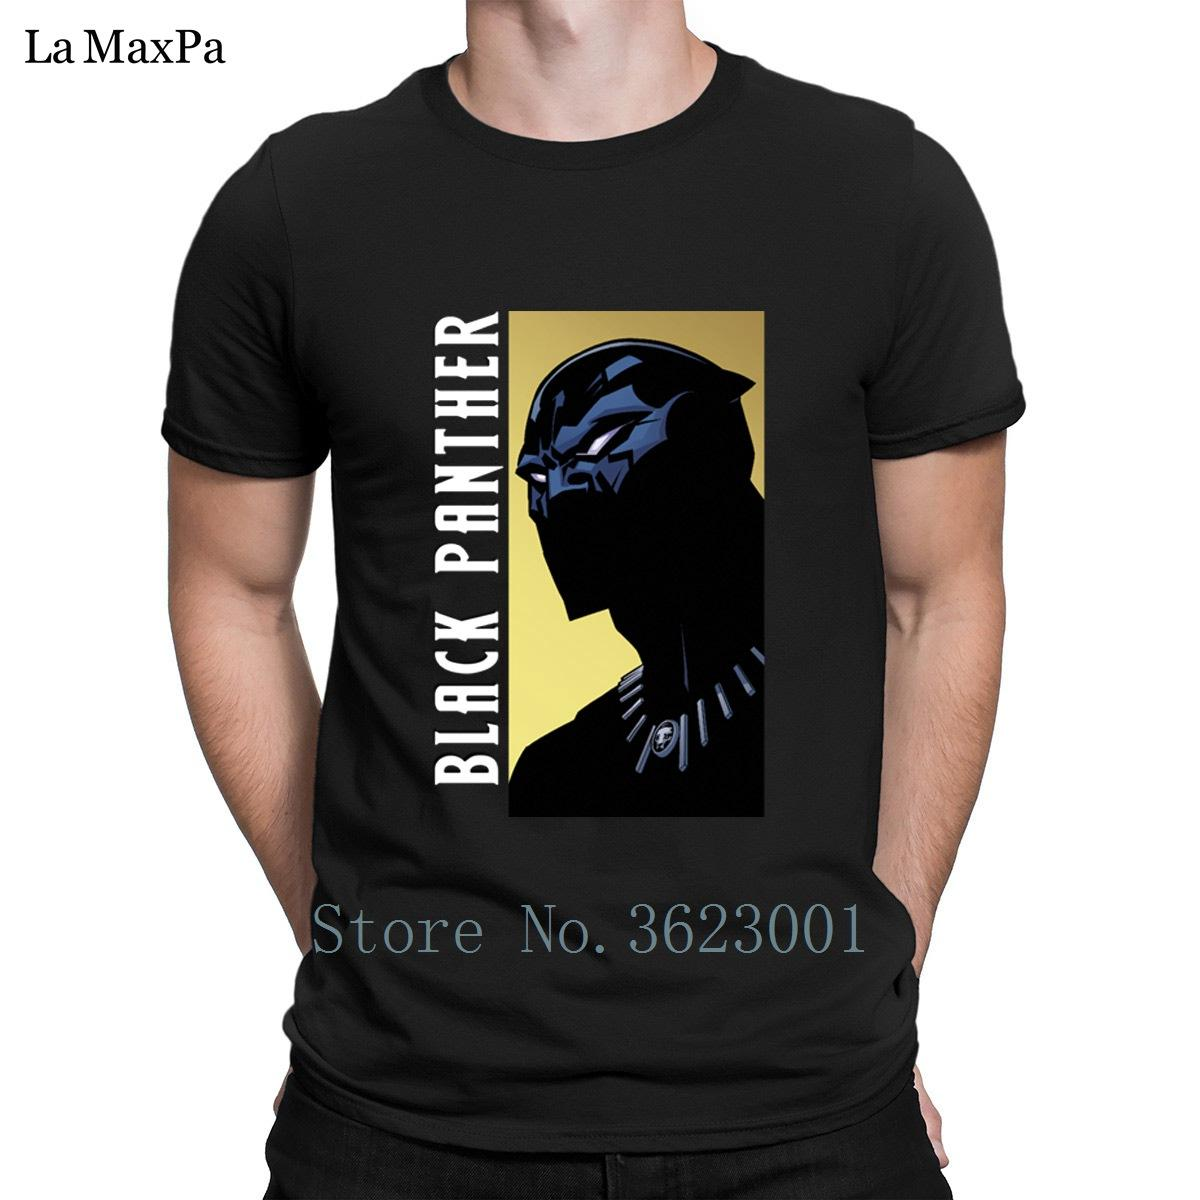 dab596b0 Building Slim T Shirt Black Panther Profile Men'S Tshirt Solid Color T Shirt  For Men Natural Tee Shirt Man Plus Size 3xl Gift Funny Vintage T Shirts T  ...